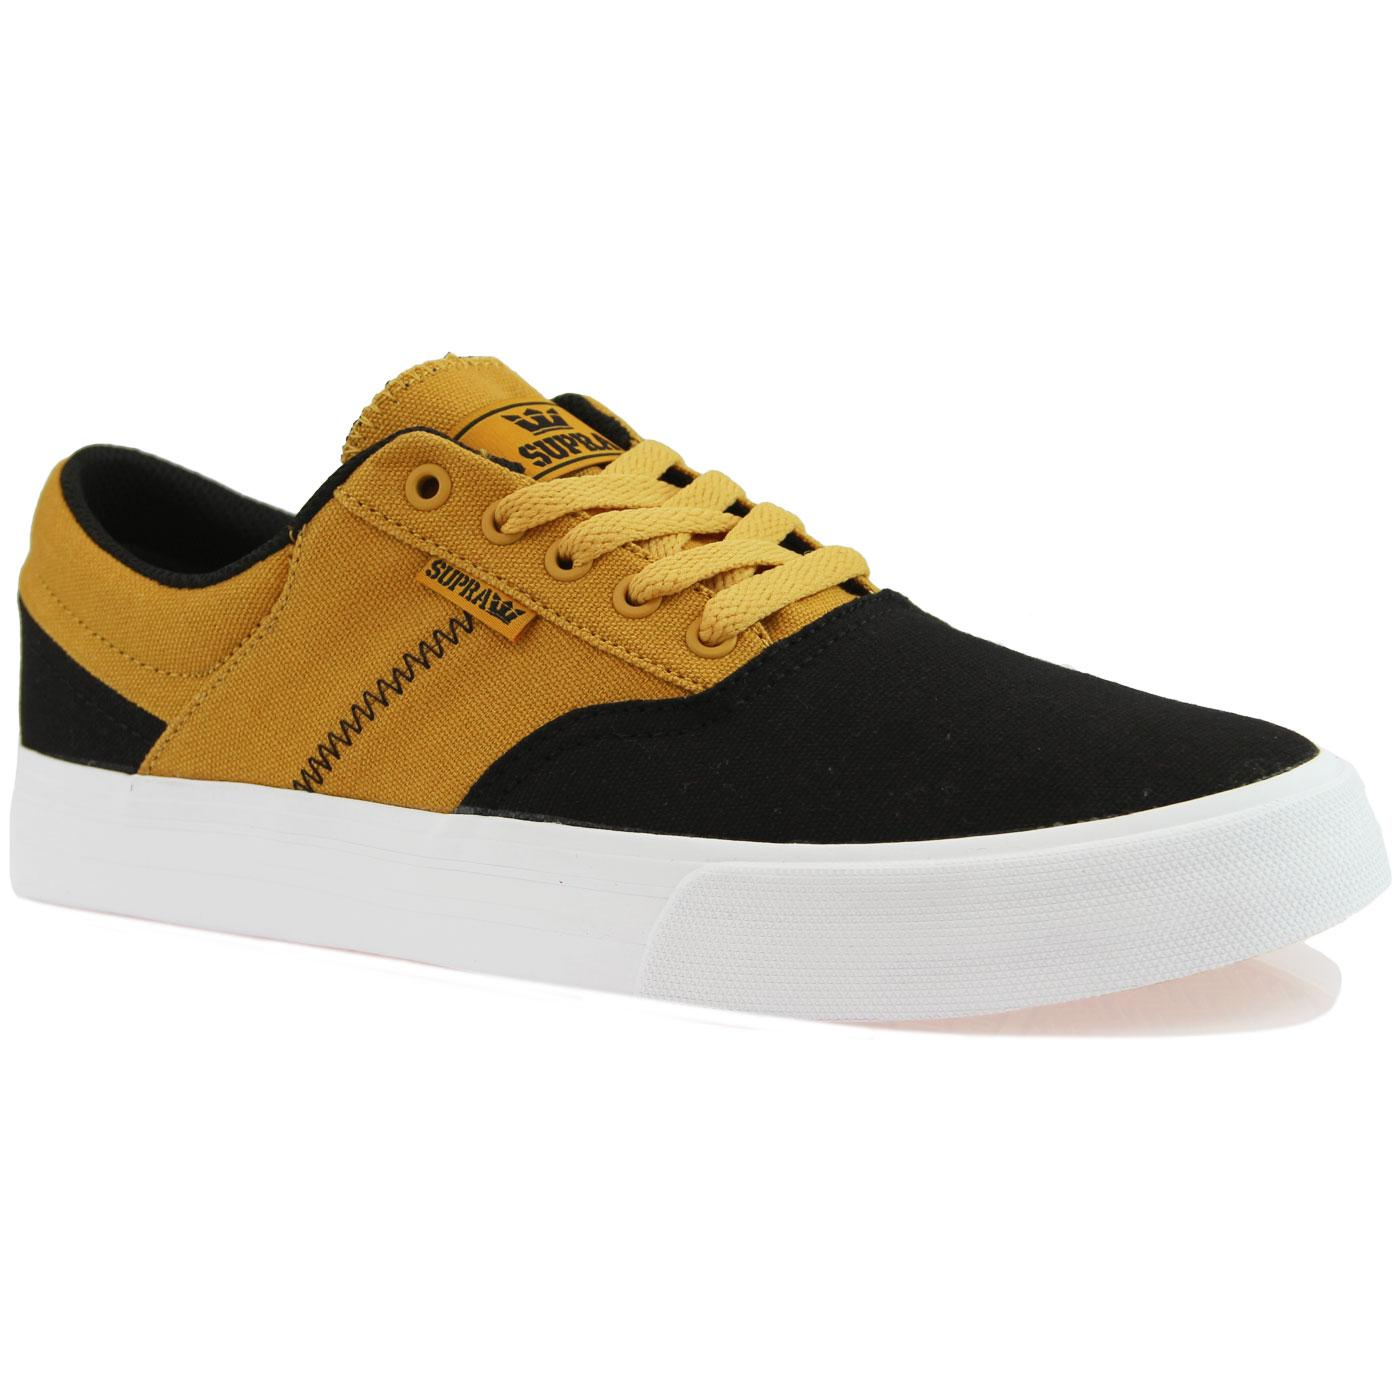 Cobalt SUPRA Low Top Trainers Black/Golden White